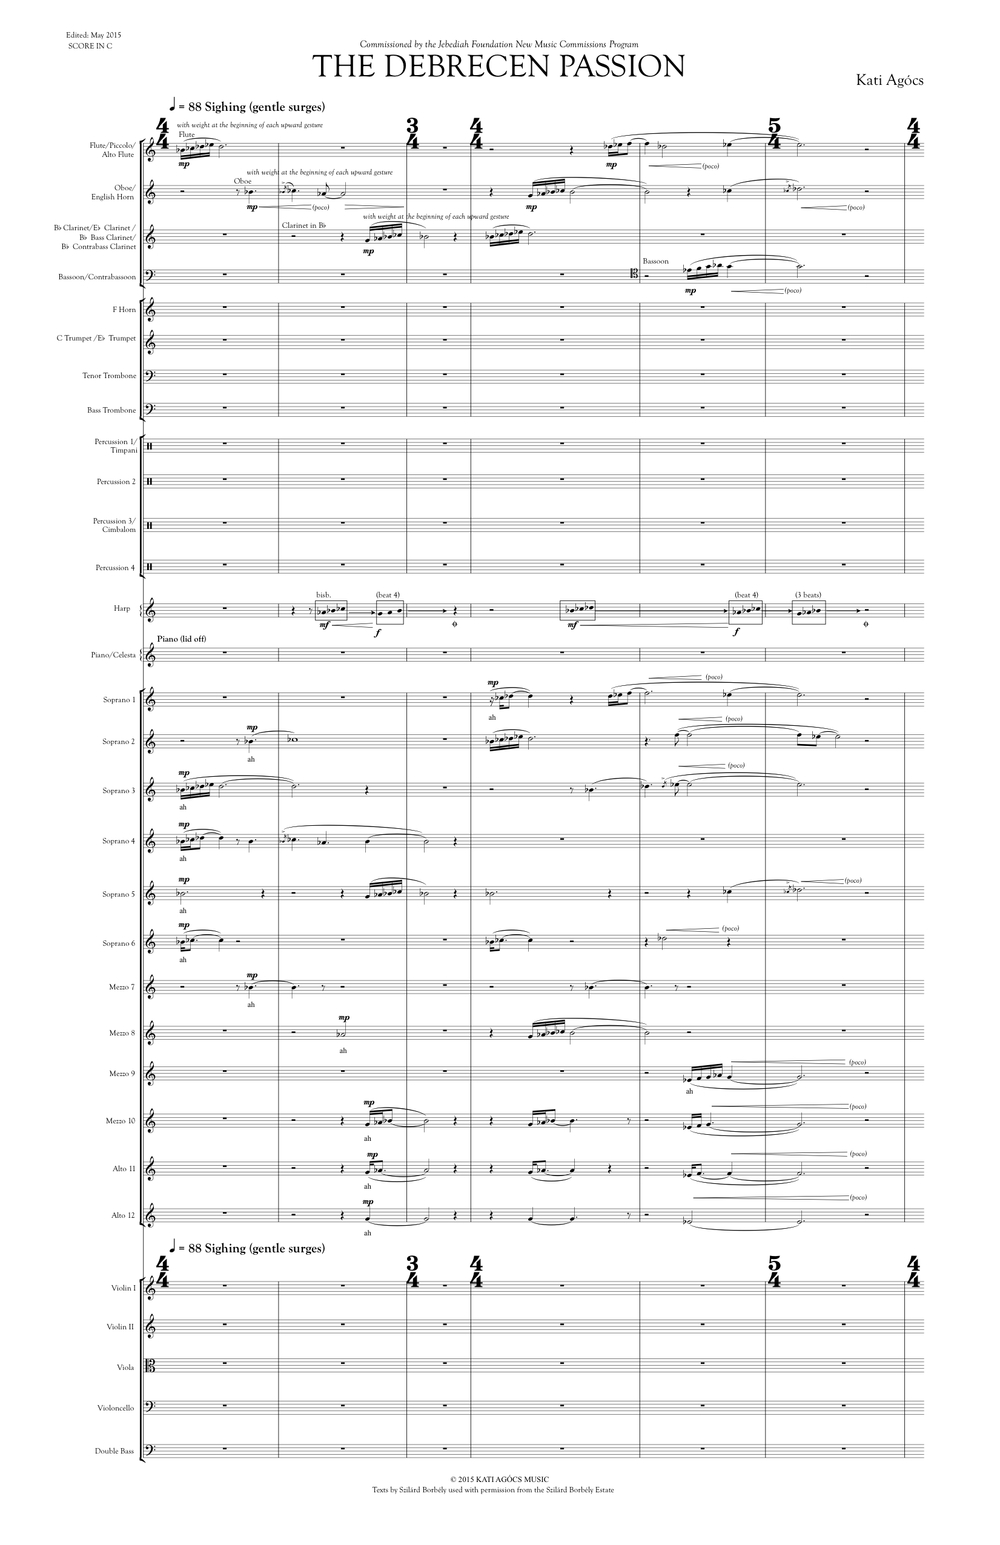 THE DEBRECEN PASSION SCORE SAMPLE.jpg